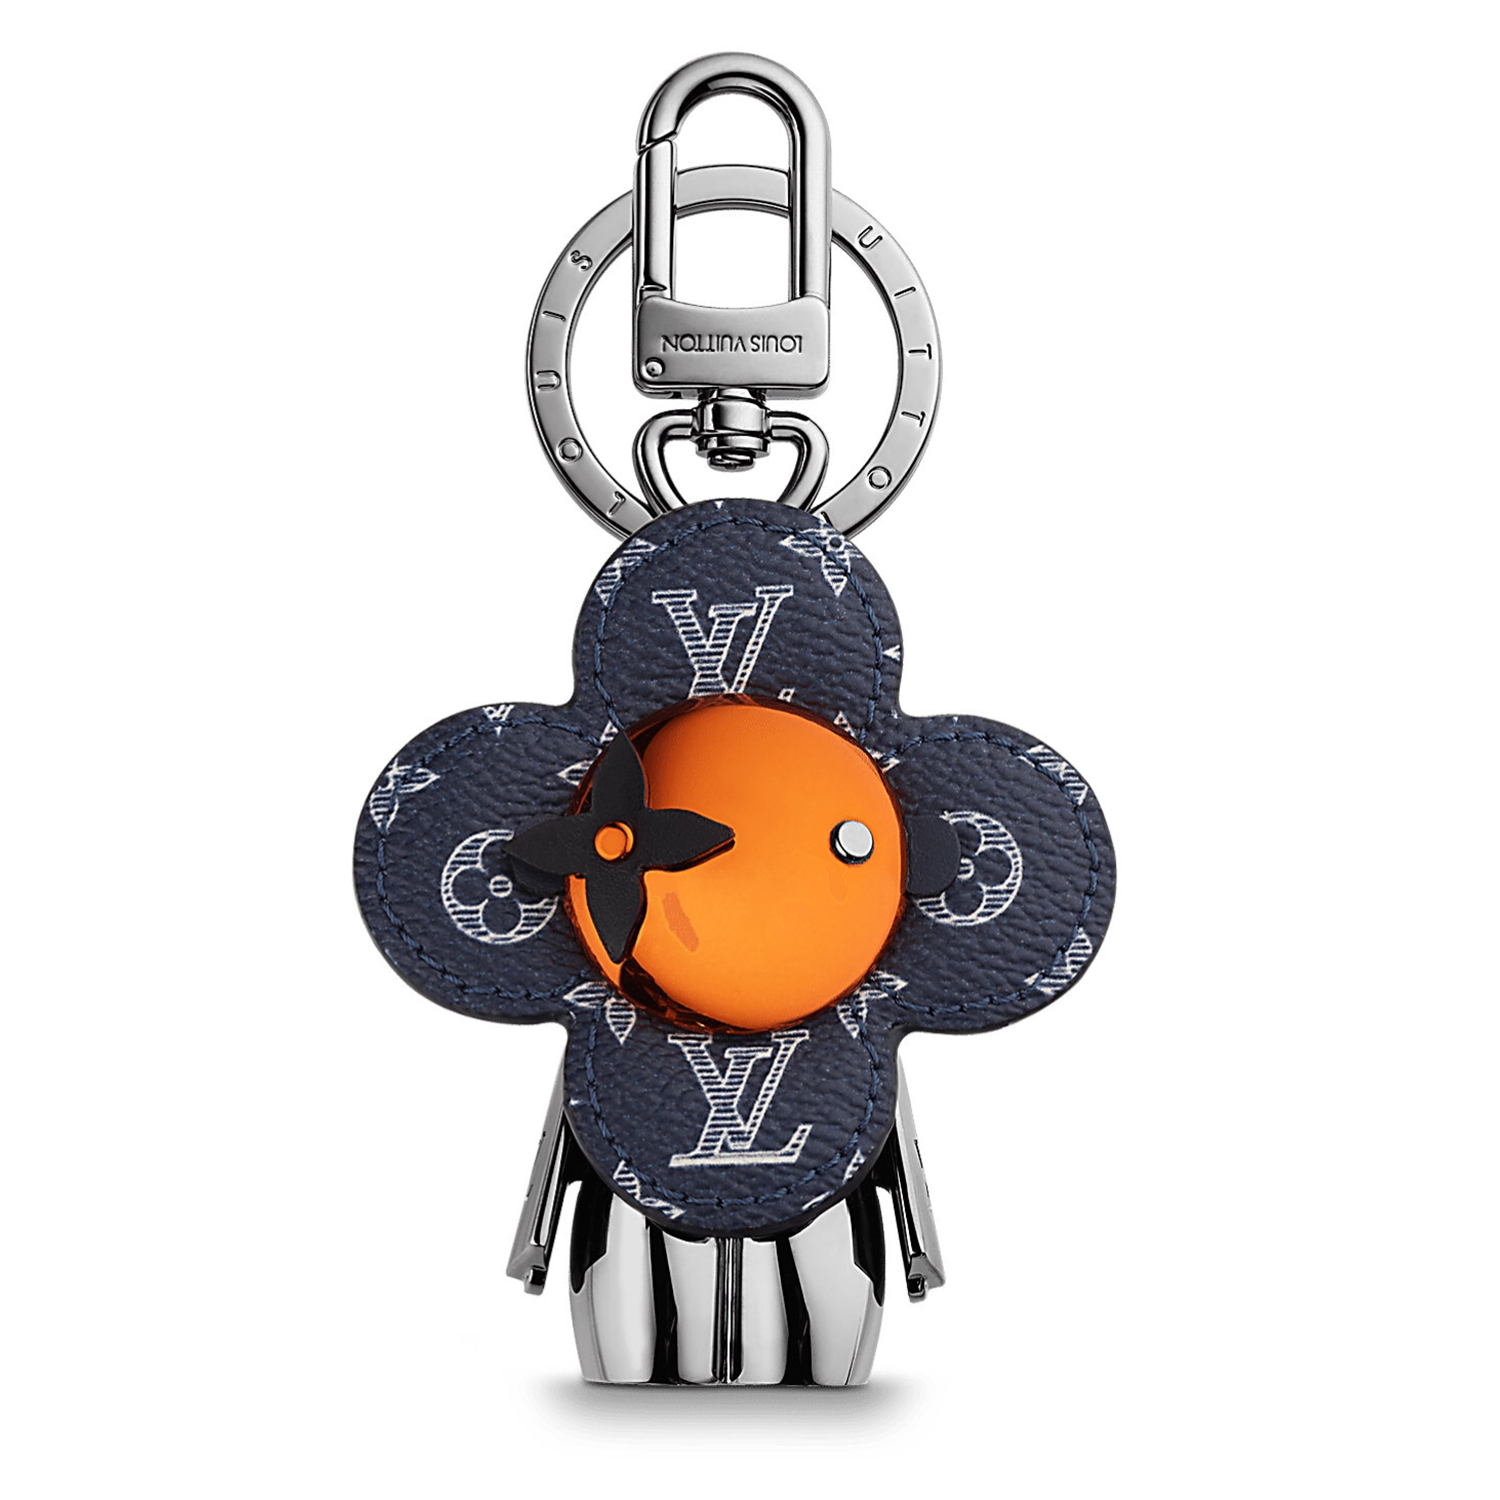 VIVIENNE CHARM - €495 $730MP1990MONOGRAM INK